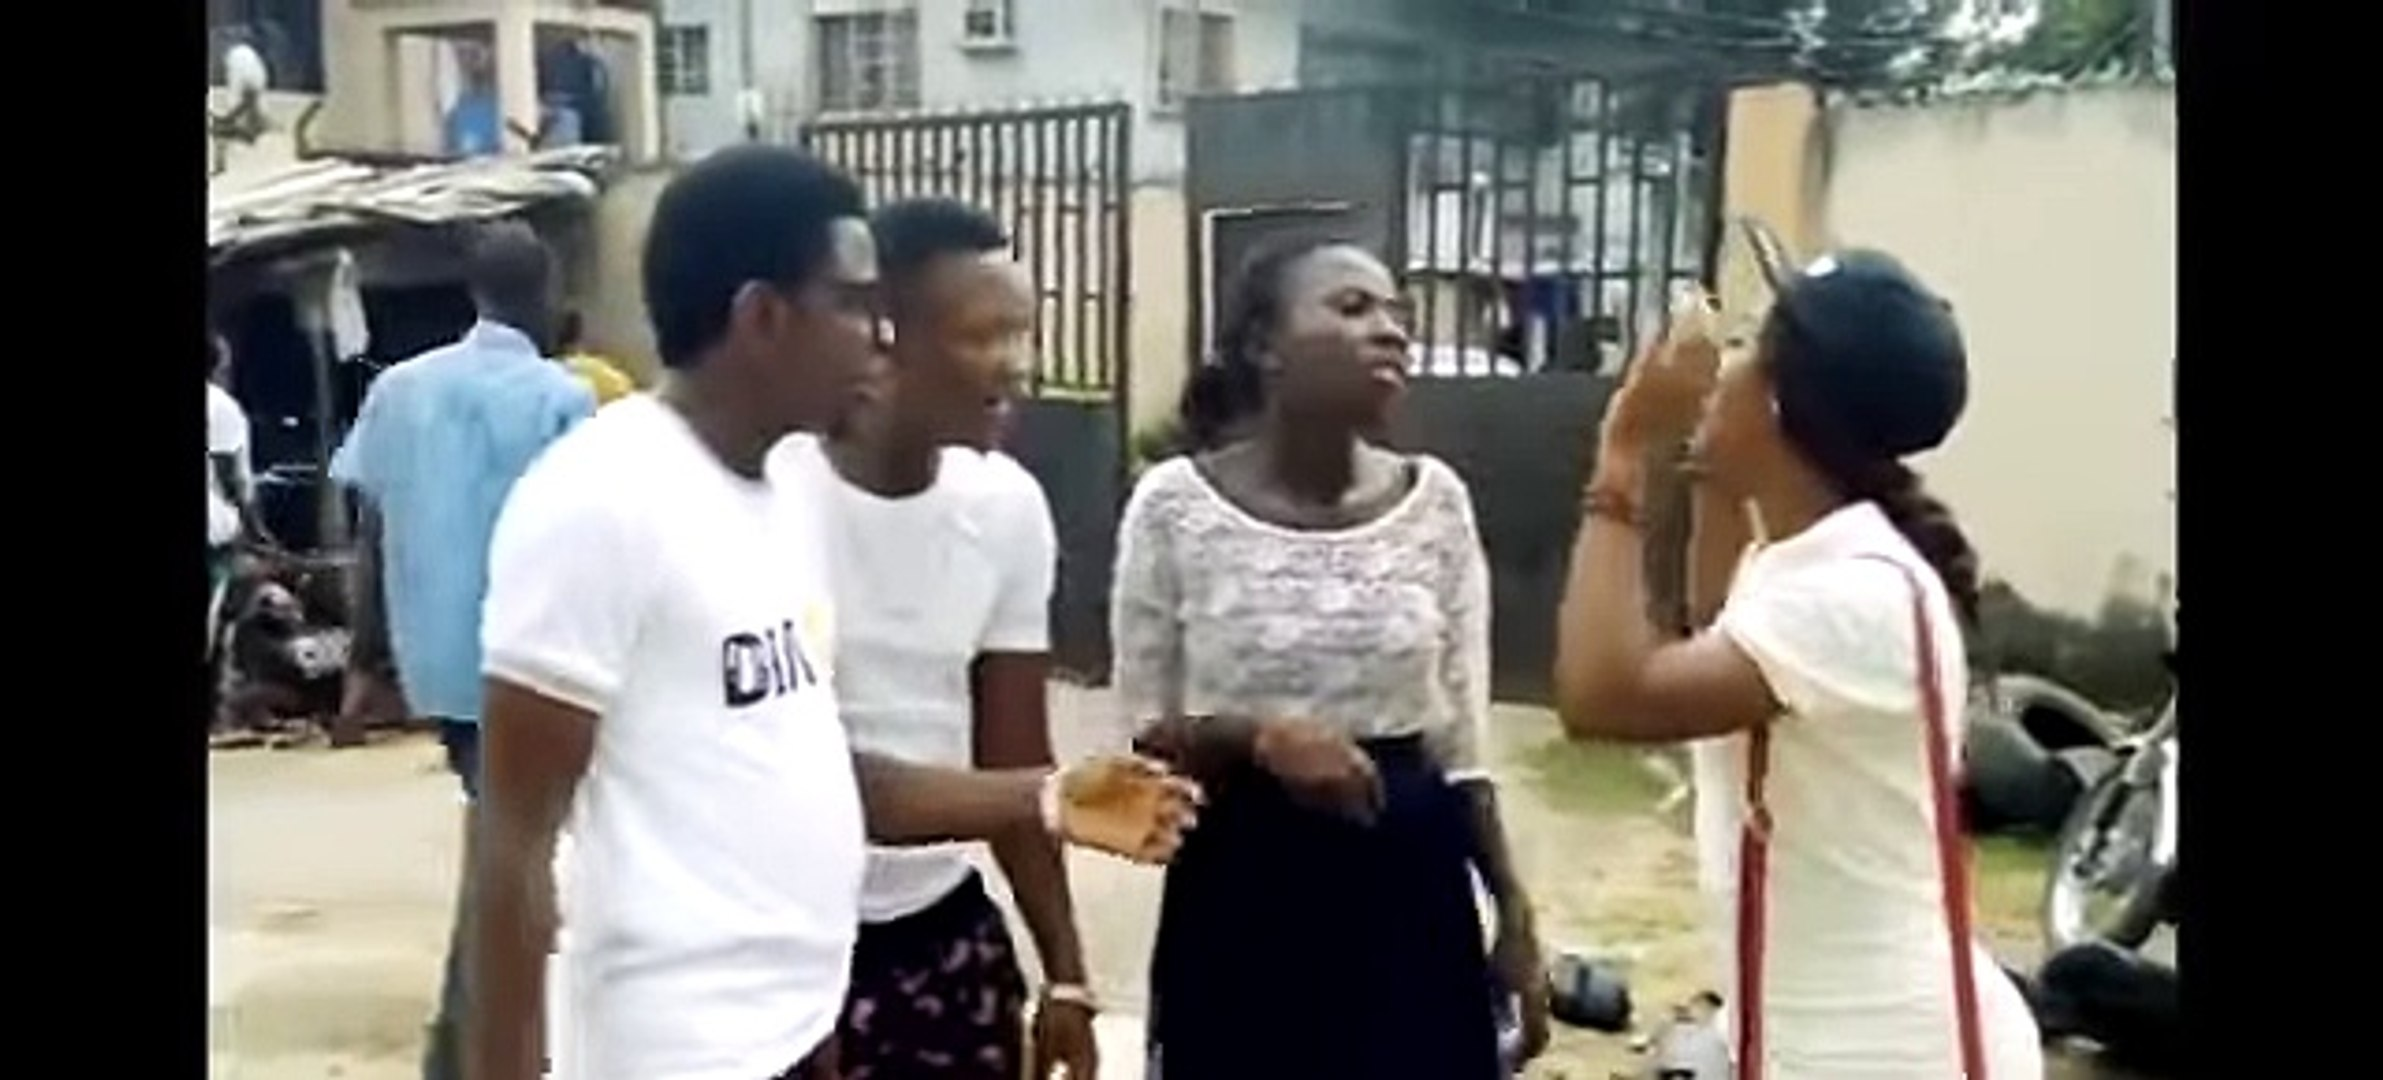 PISS AGAIN (COMEDY SKIT) (FUNNY VIDEOS) - Latest 2018 Nigerian Comedy- Comedy Skits- Naija Comedy -